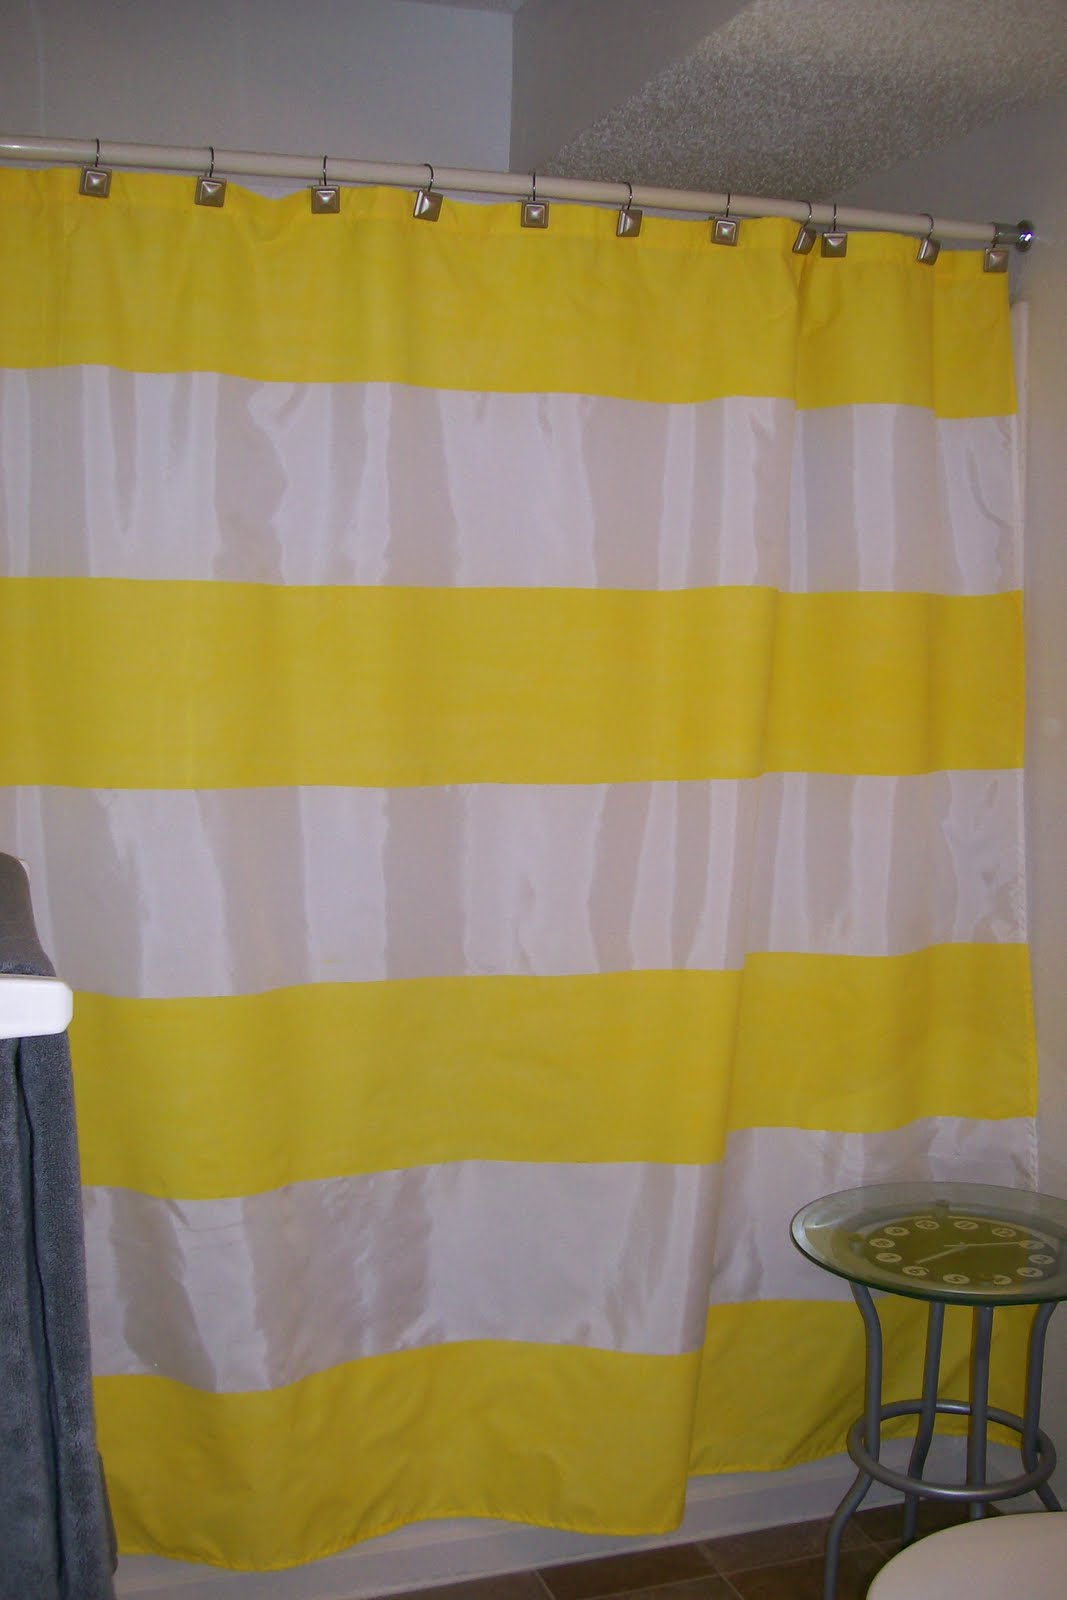 Diy painted shower curtain - Diy Painted Shower Curtain